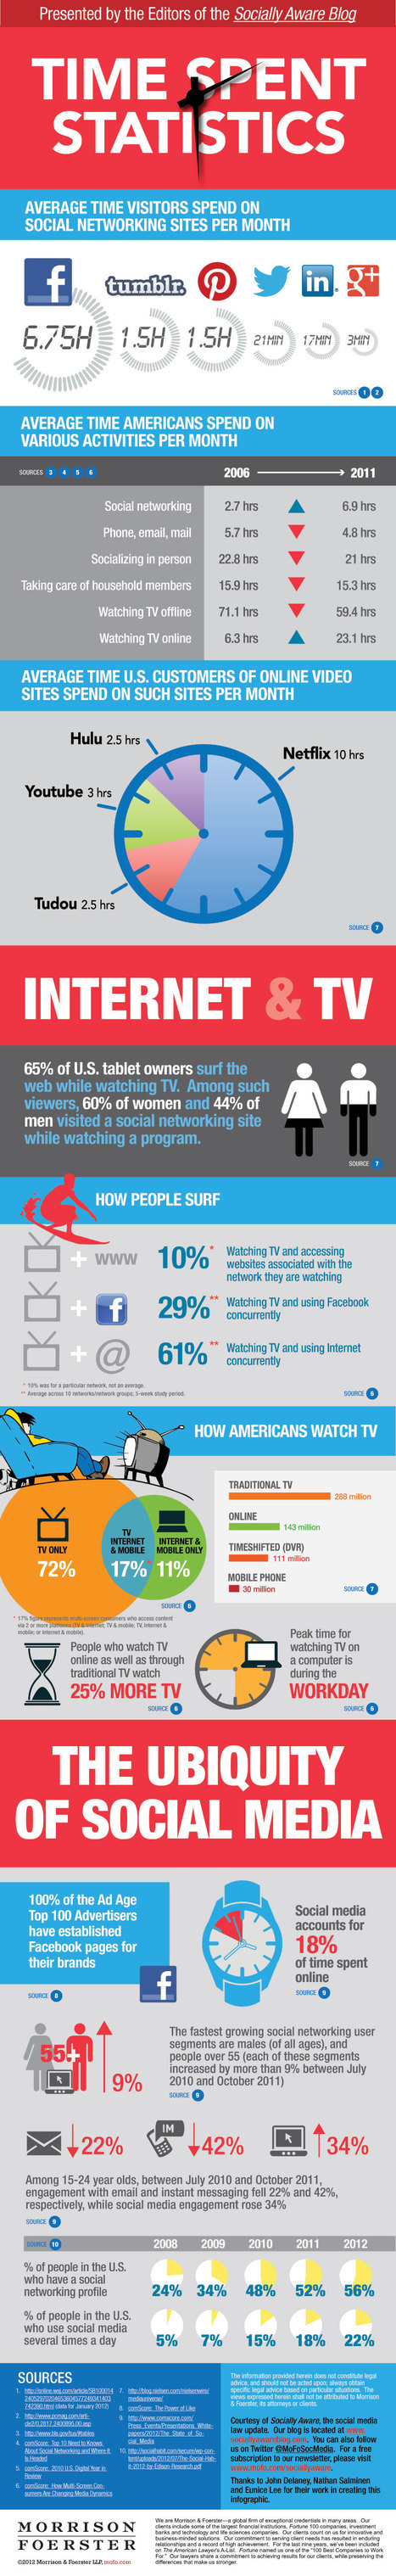 INFOGRAPHIC: The Growing Impact of Social Media | Cloud Central | Scoop.it